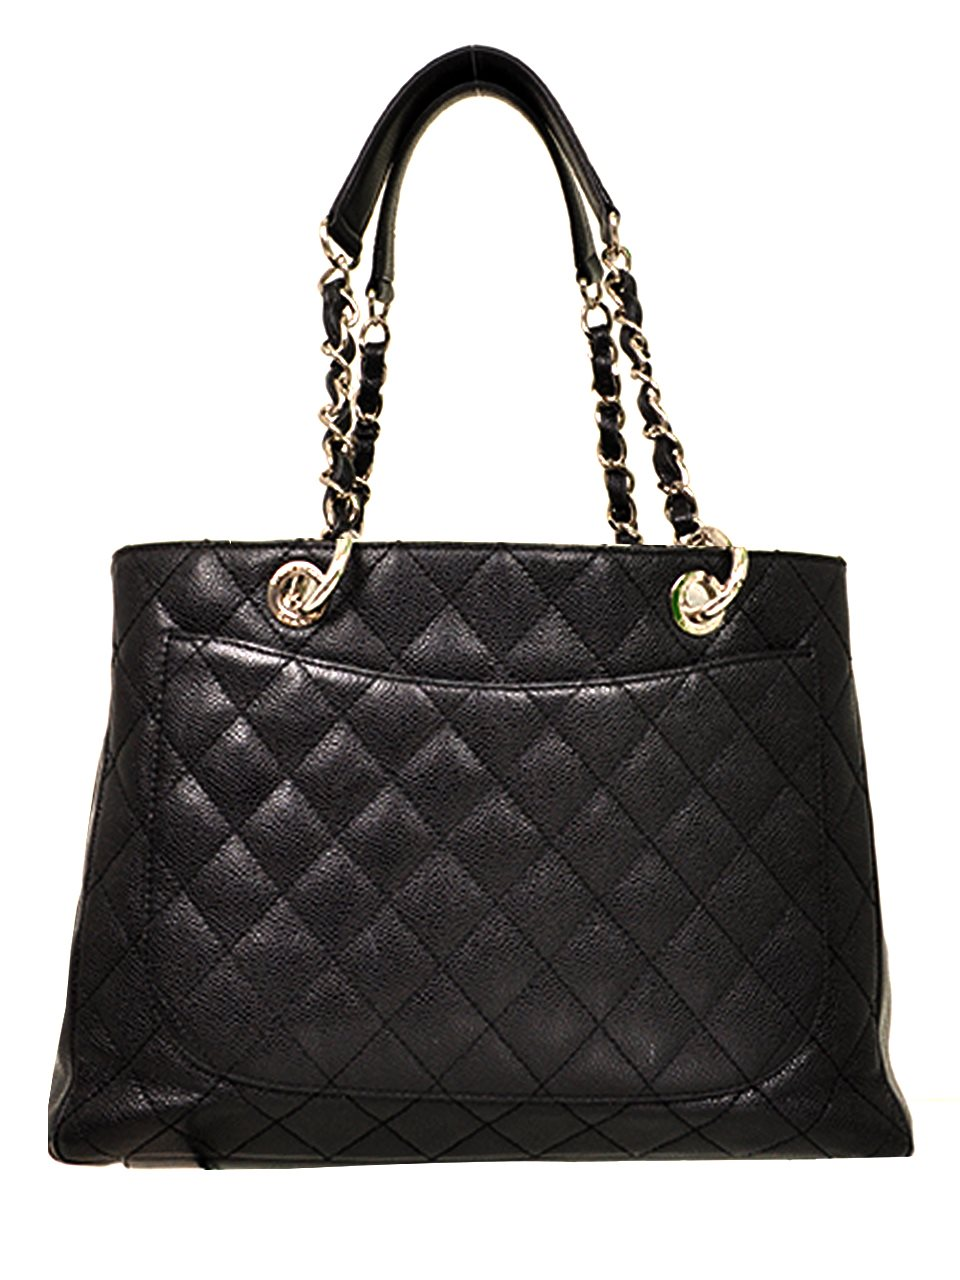 Chanel - Quilted Caviar Leather Grand Shopper Shoulder Bag - Image 2 of 4